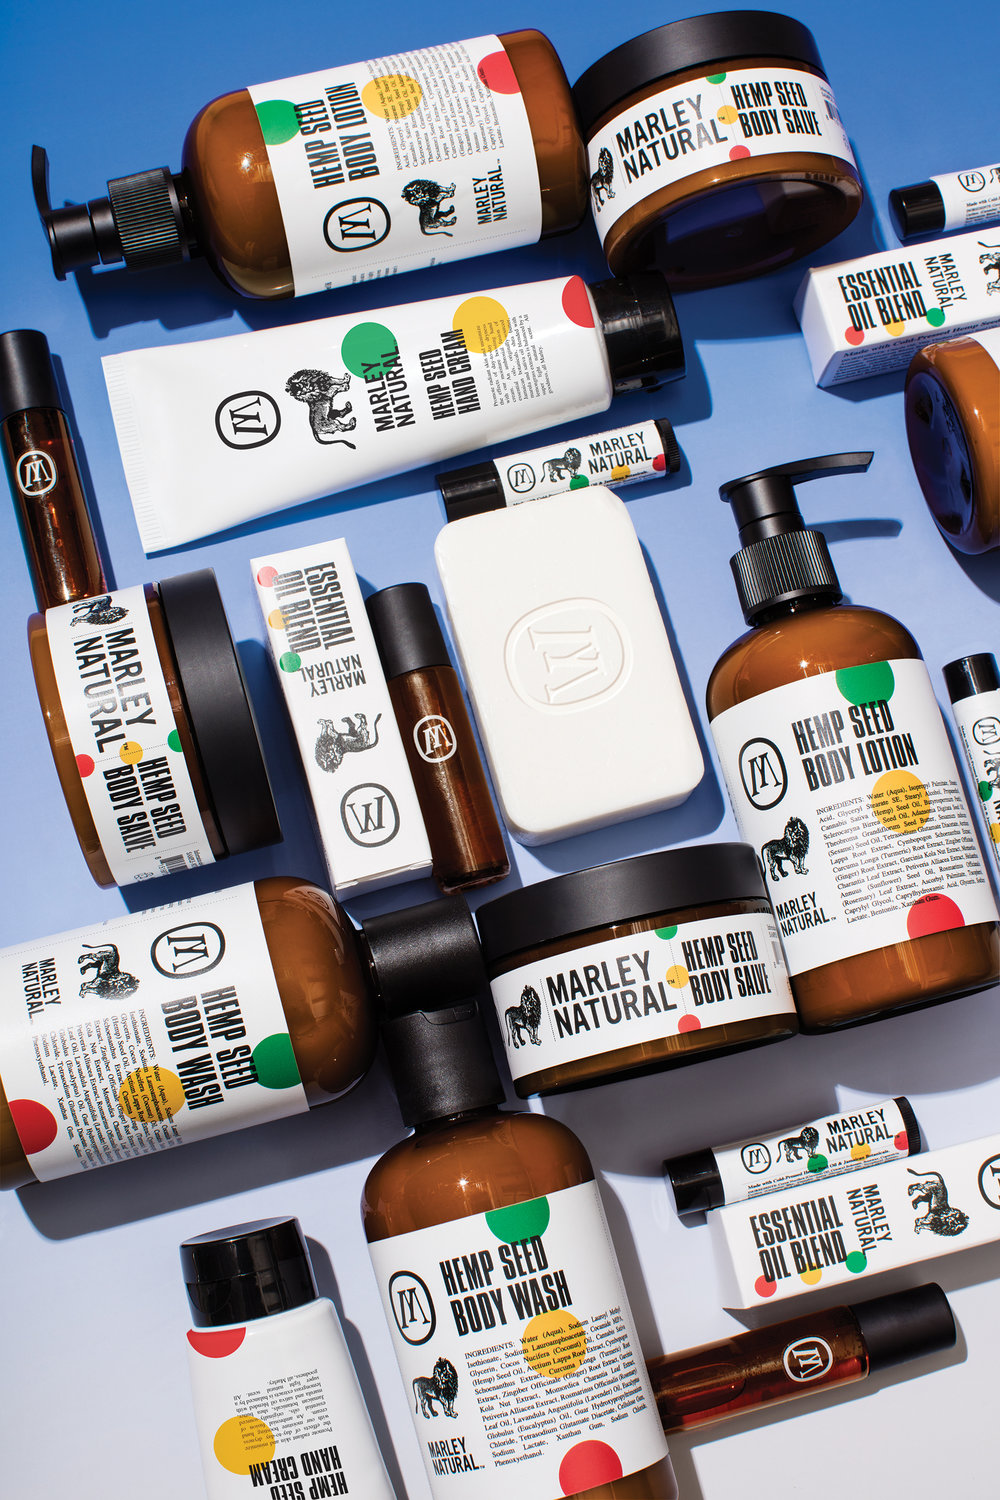 Marley Natural Makes European Debut At Iconic Retailer Colette In Paris